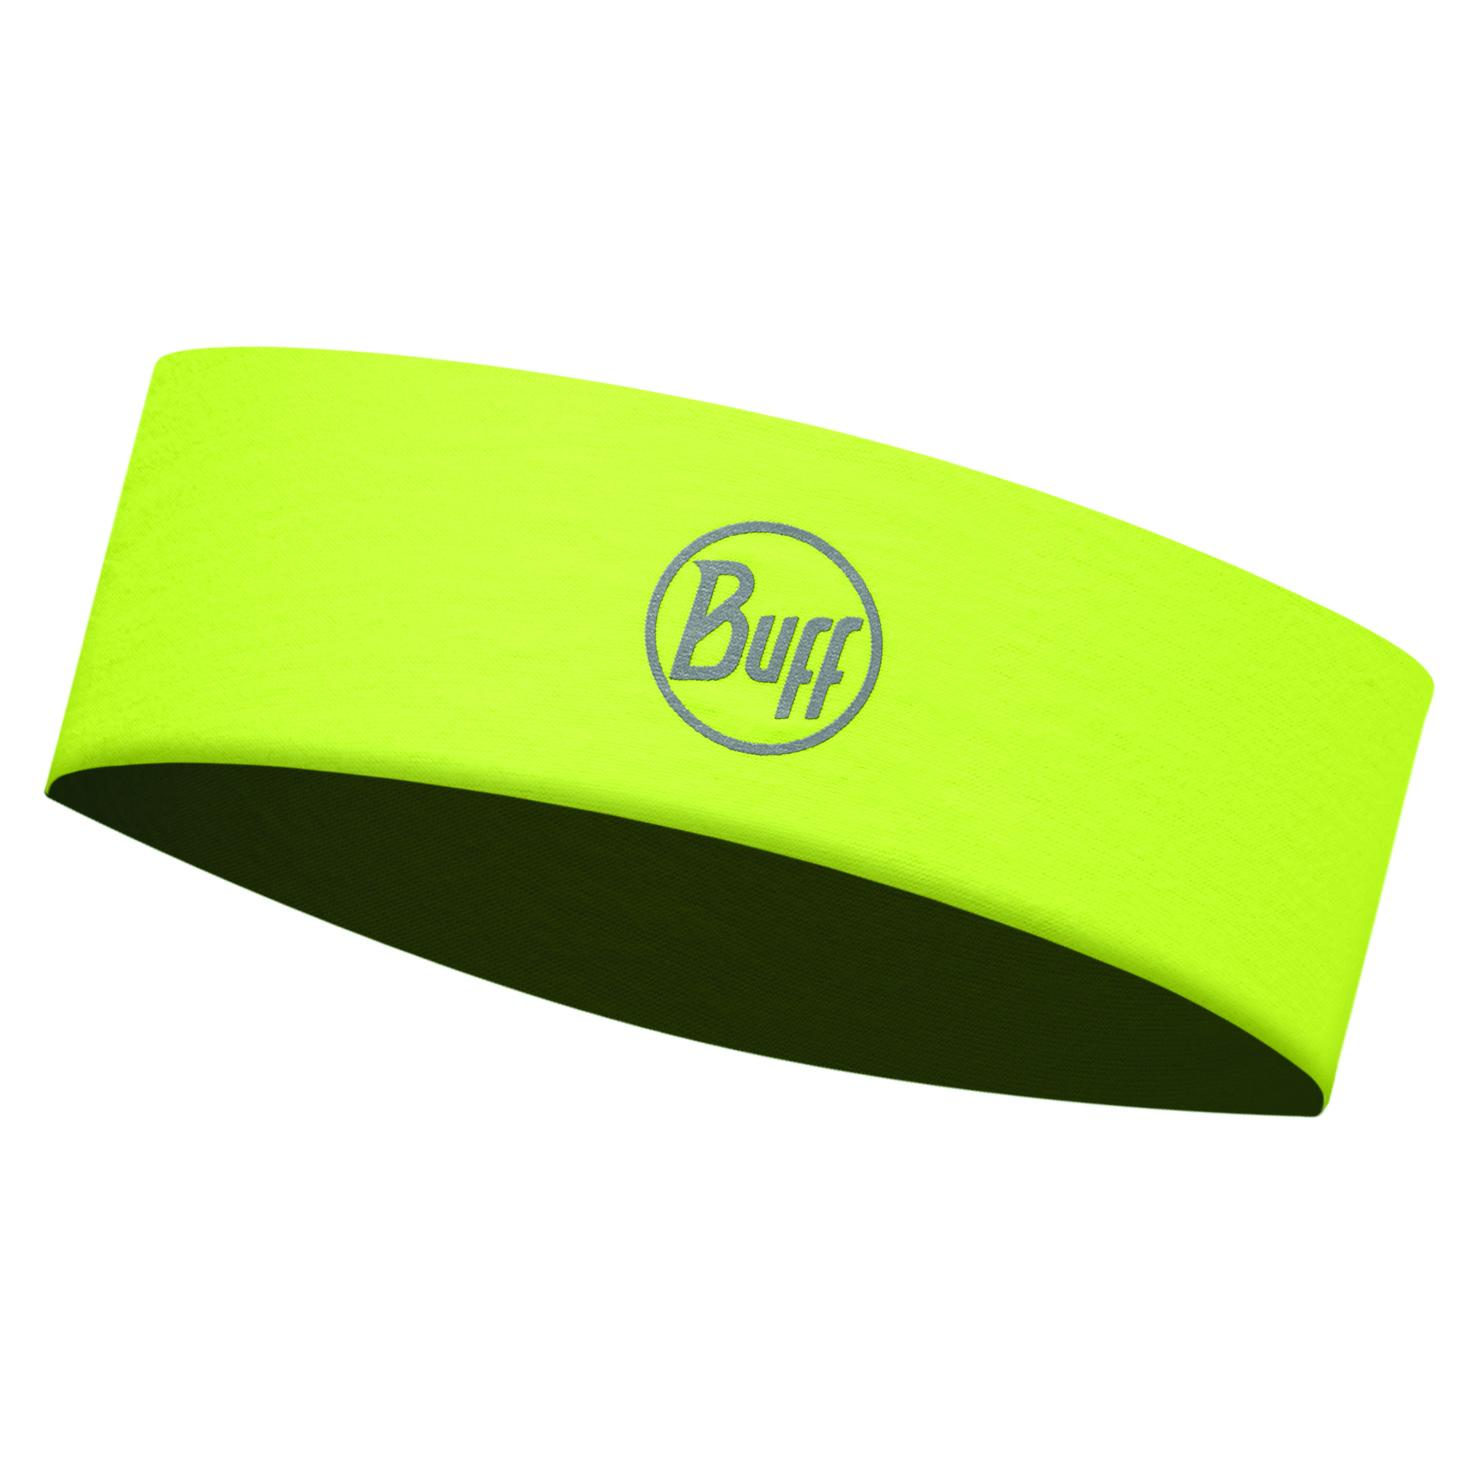 Купить Повязка BUFF Headband R-SOLID YELLOW FLUOR Slim Банданы и шарфы Buff ® 1312849